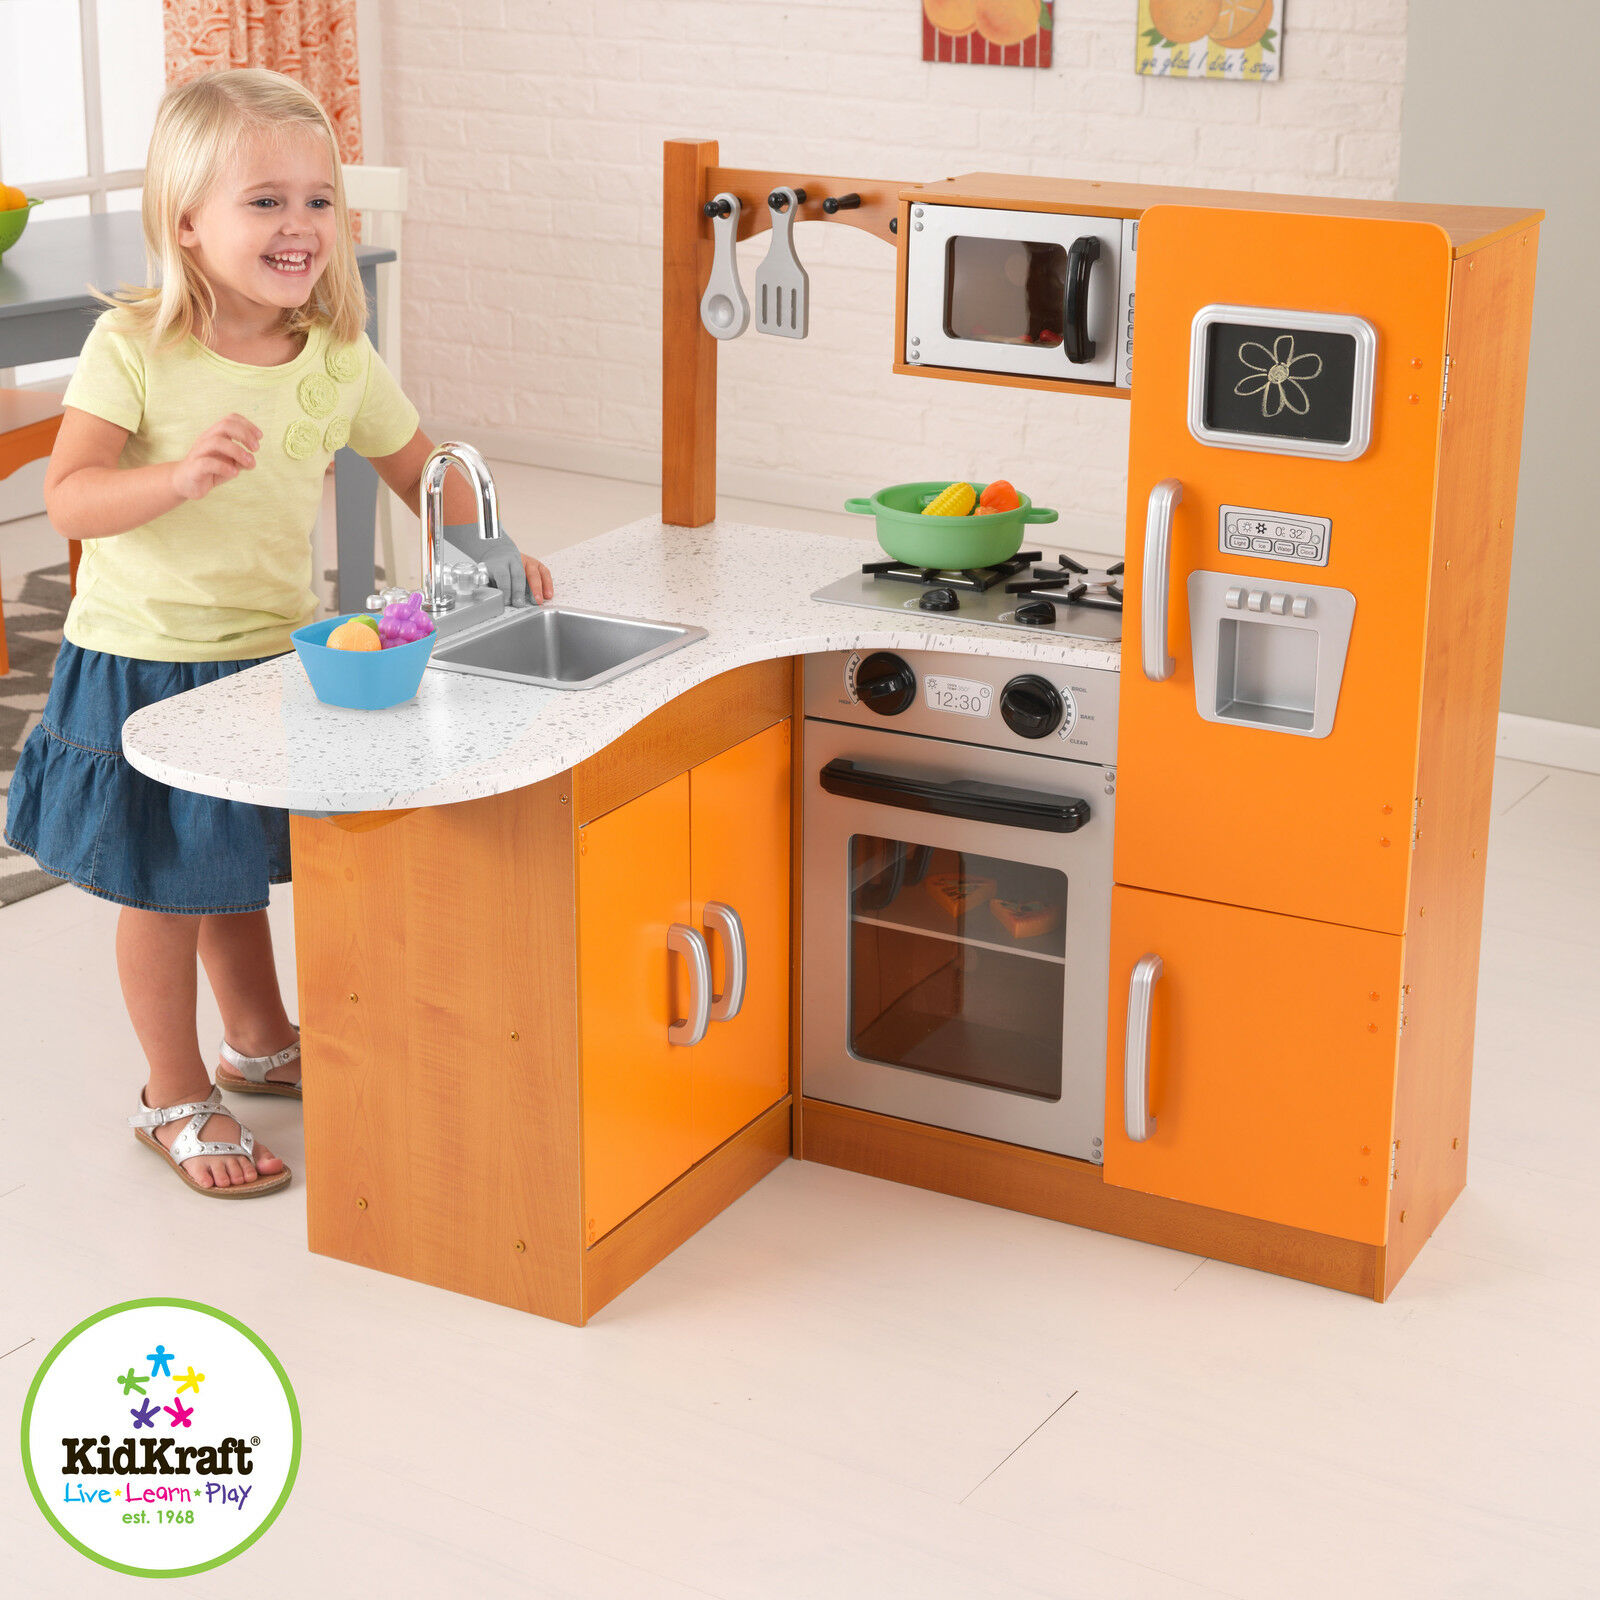 Product features for Kids kitchen set